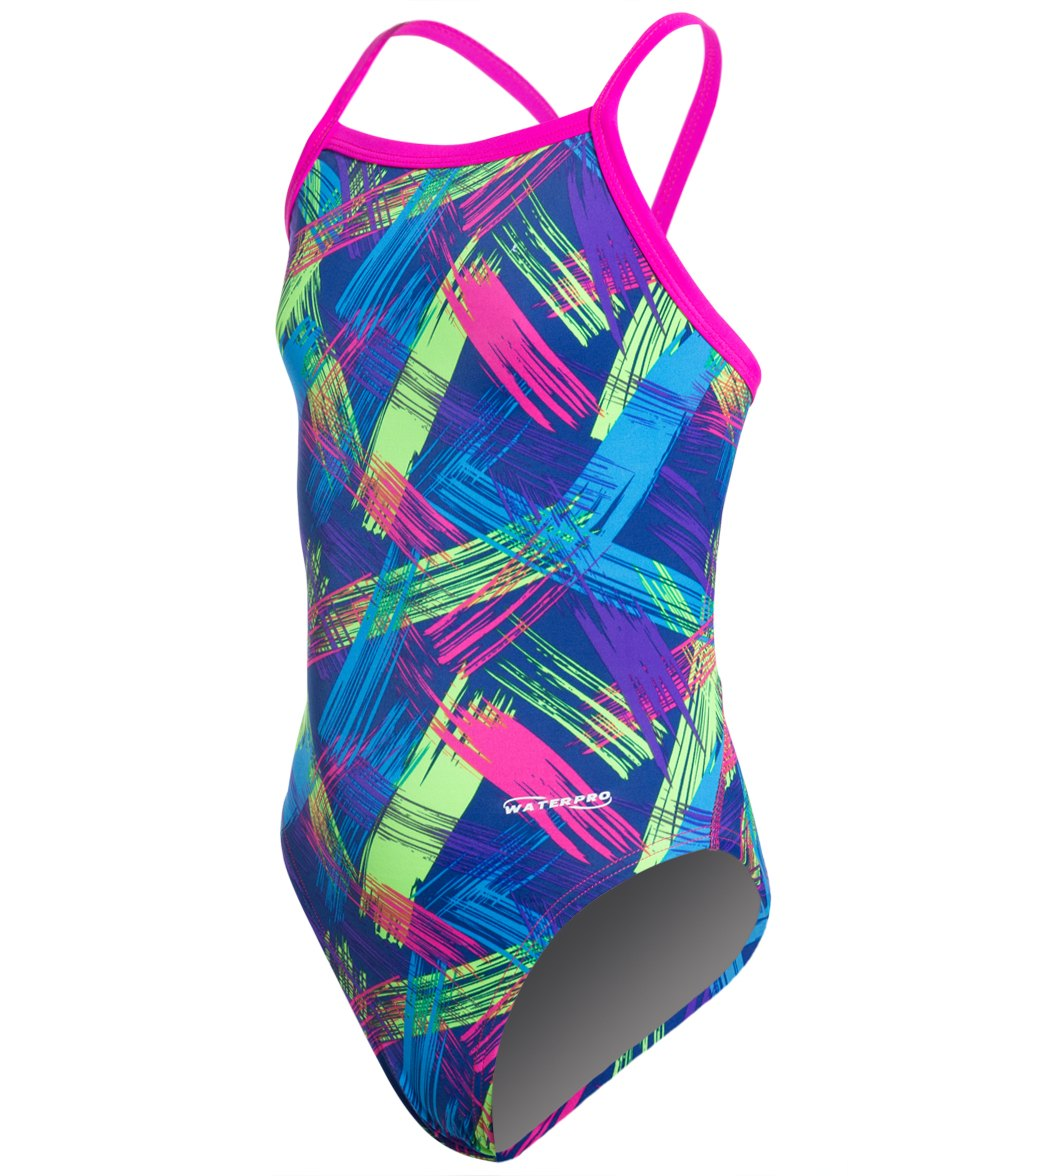 ad805c7dc8457 Waterpro Neon Youth One Piece Swimsuit at SwimOutlet.com